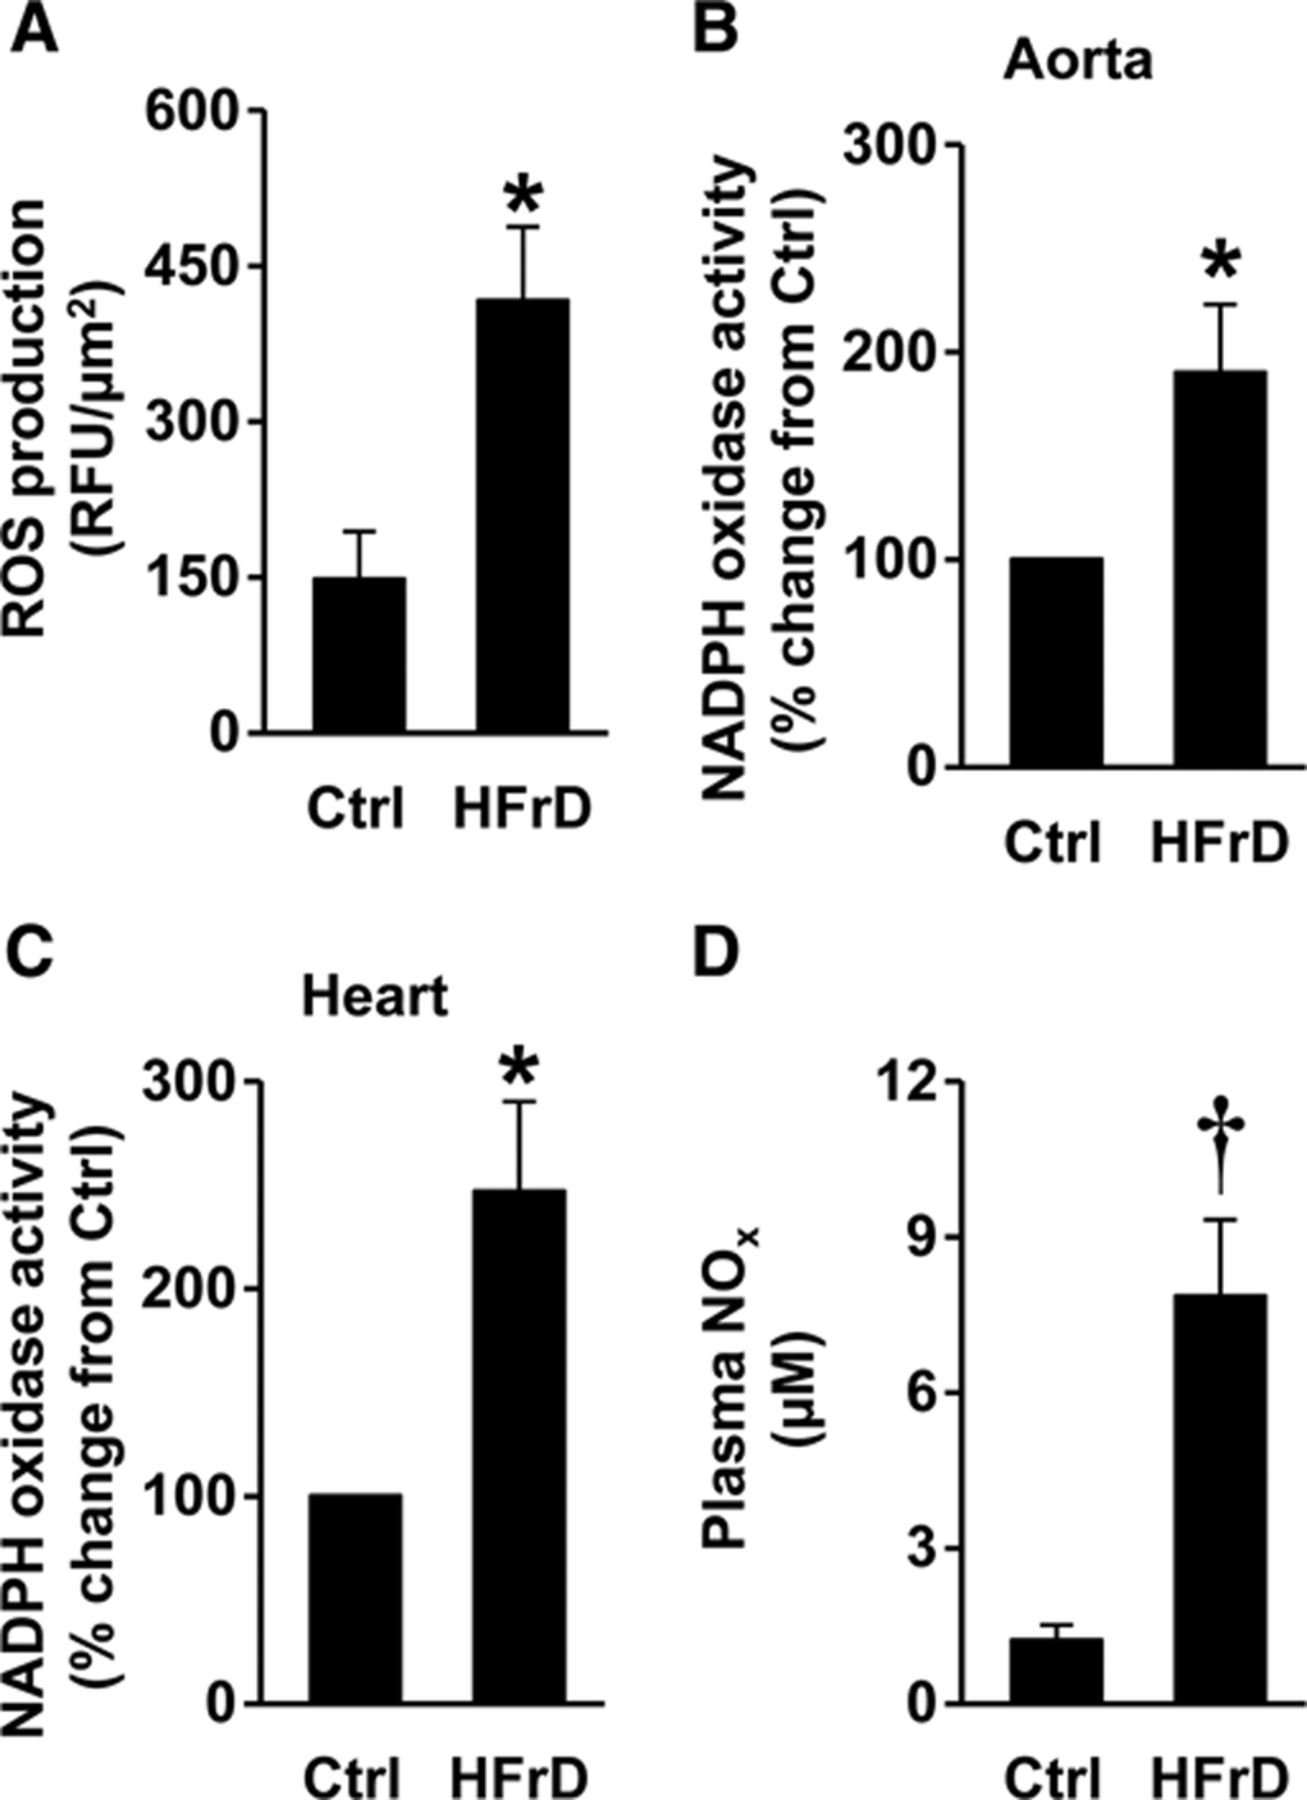 High Fructose Diet In Adolescence May >> Role Of T Regulatory Lymphocytes In The Pathogenesis Of High